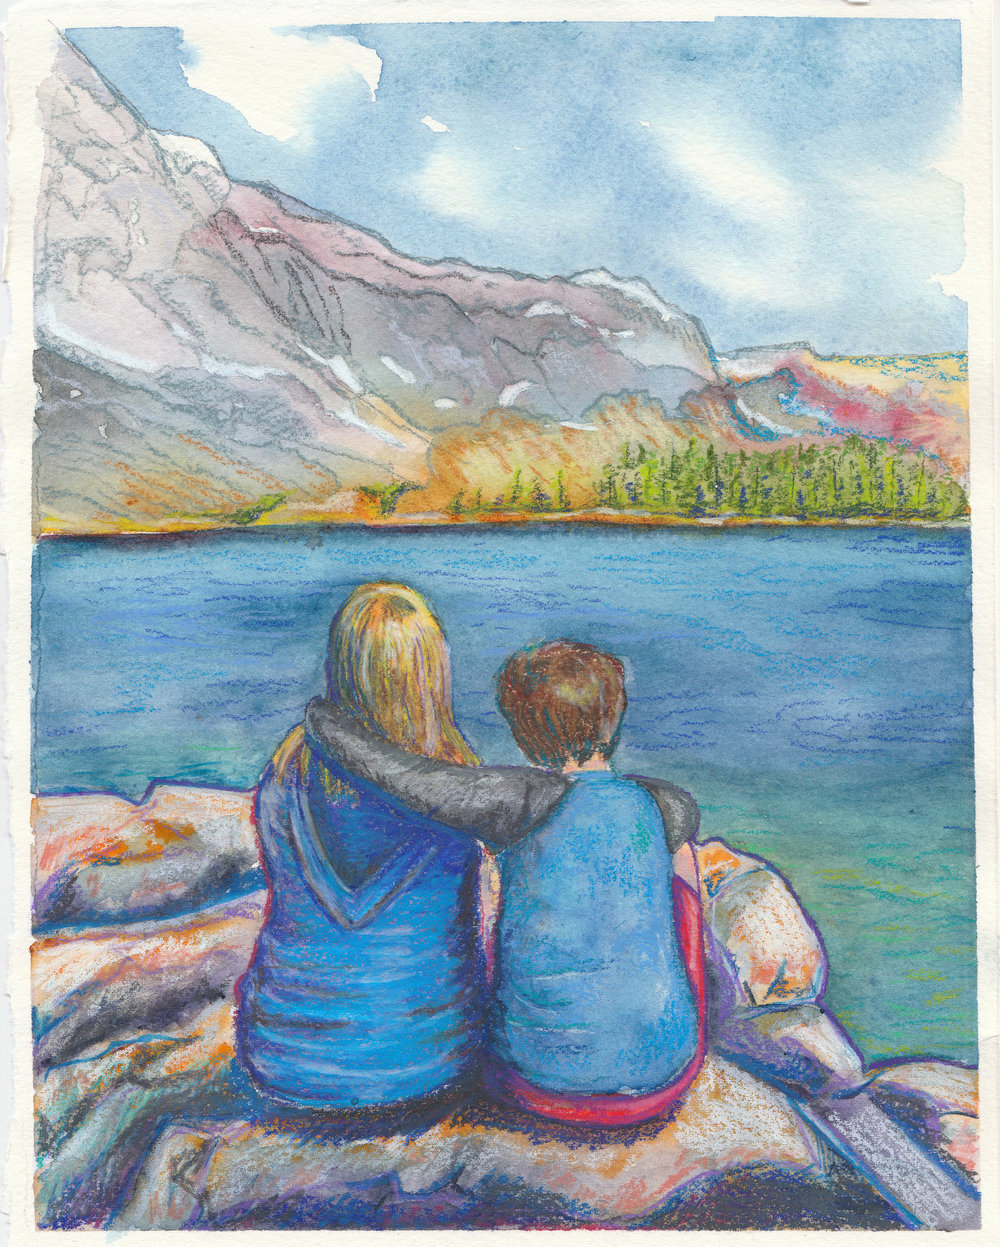 """This Moment Forever"", watercolor and colored pencil, 8"" x 10"", 2018 by Nancy Marlatt"